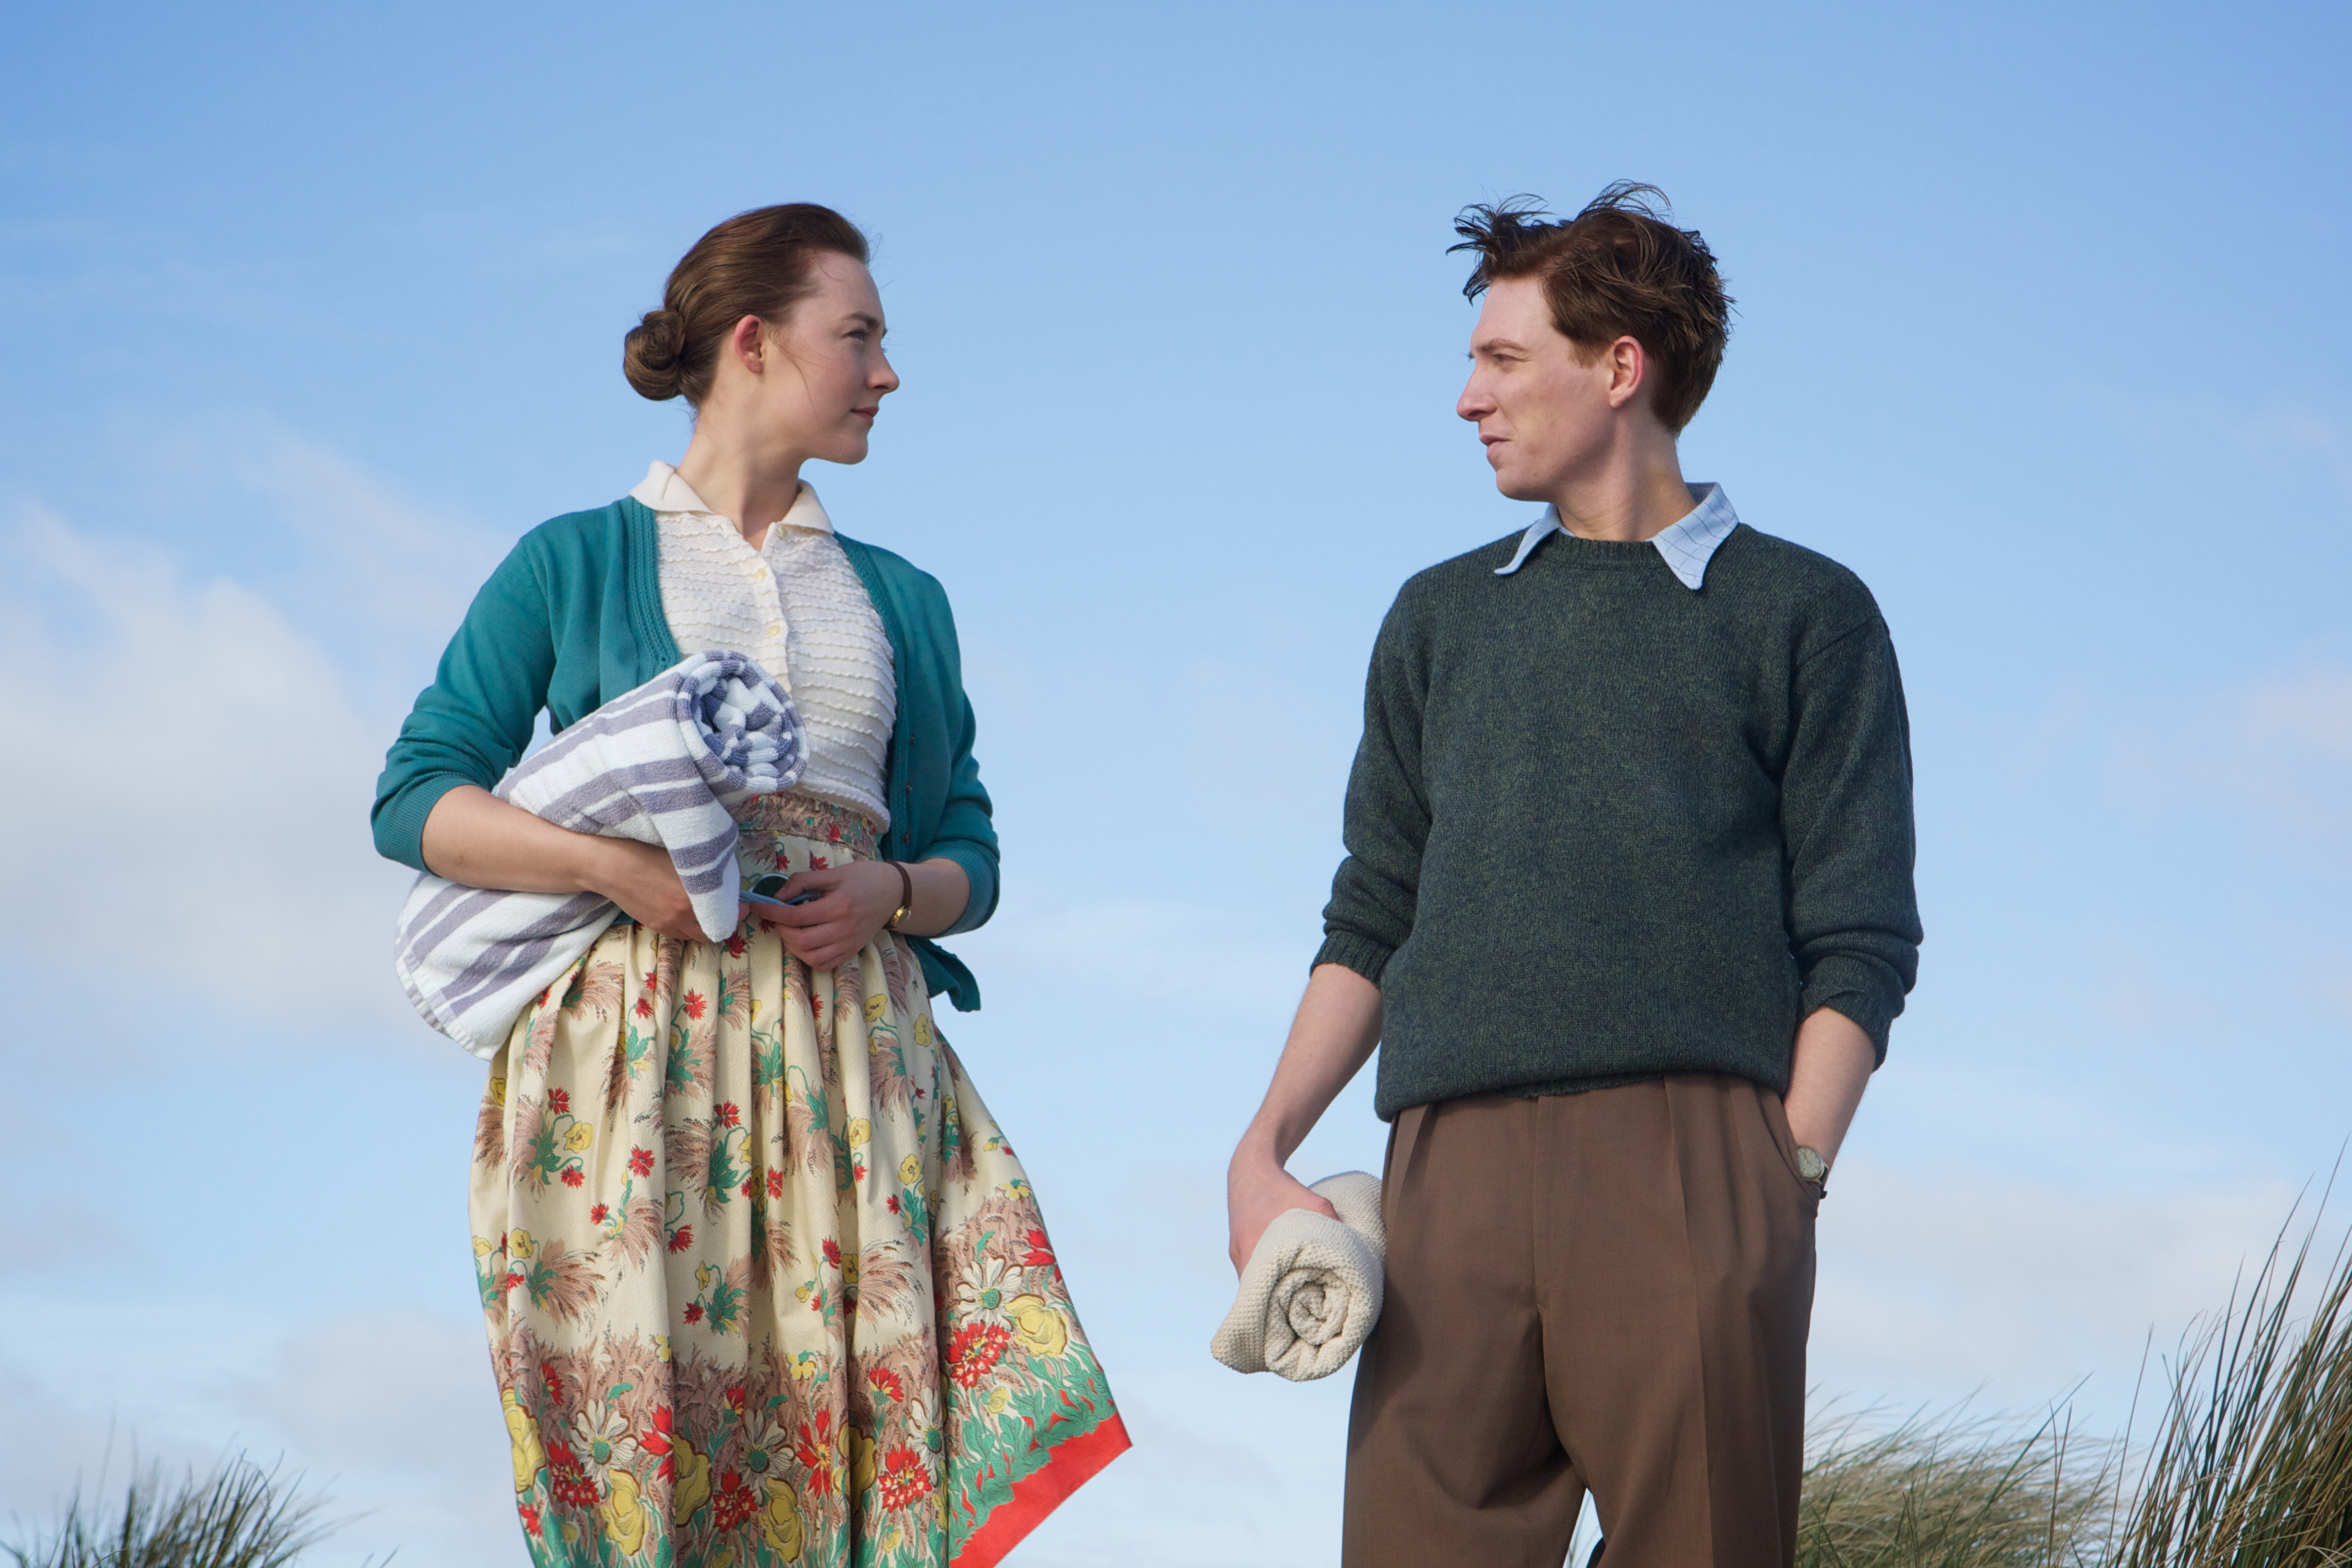 """Saoirse Ronan as """"Eilis"""" and Domhnall Gleeson as """"Jim"""" in BROOKLYN. Photo by Kerry Brown.  © 2015 Twentieth Century Fox Film Corporation All Rights Reserved"""